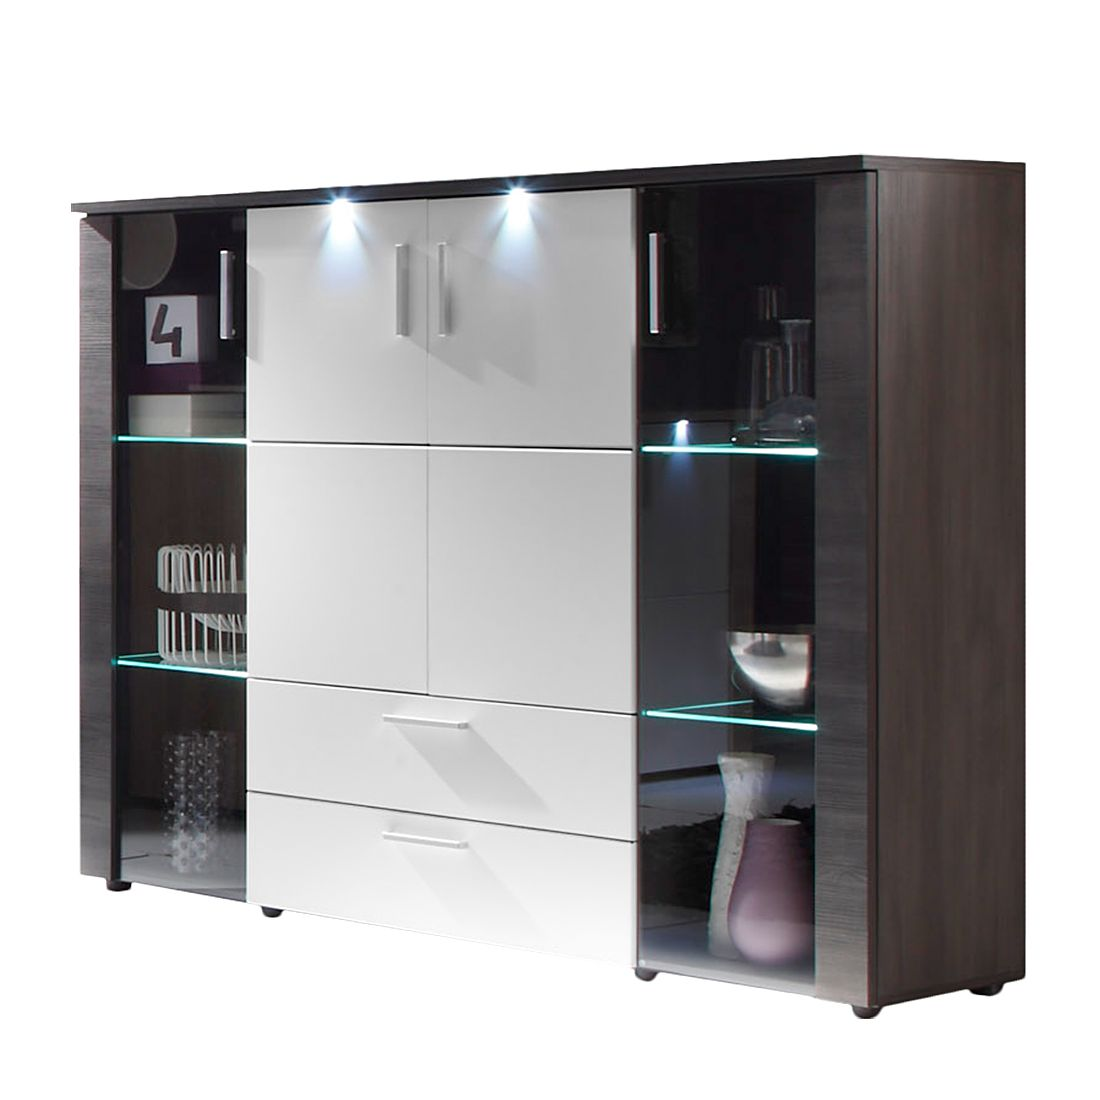 highboard weiss hochglanz preis vergleich 2016. Black Bedroom Furniture Sets. Home Design Ideas